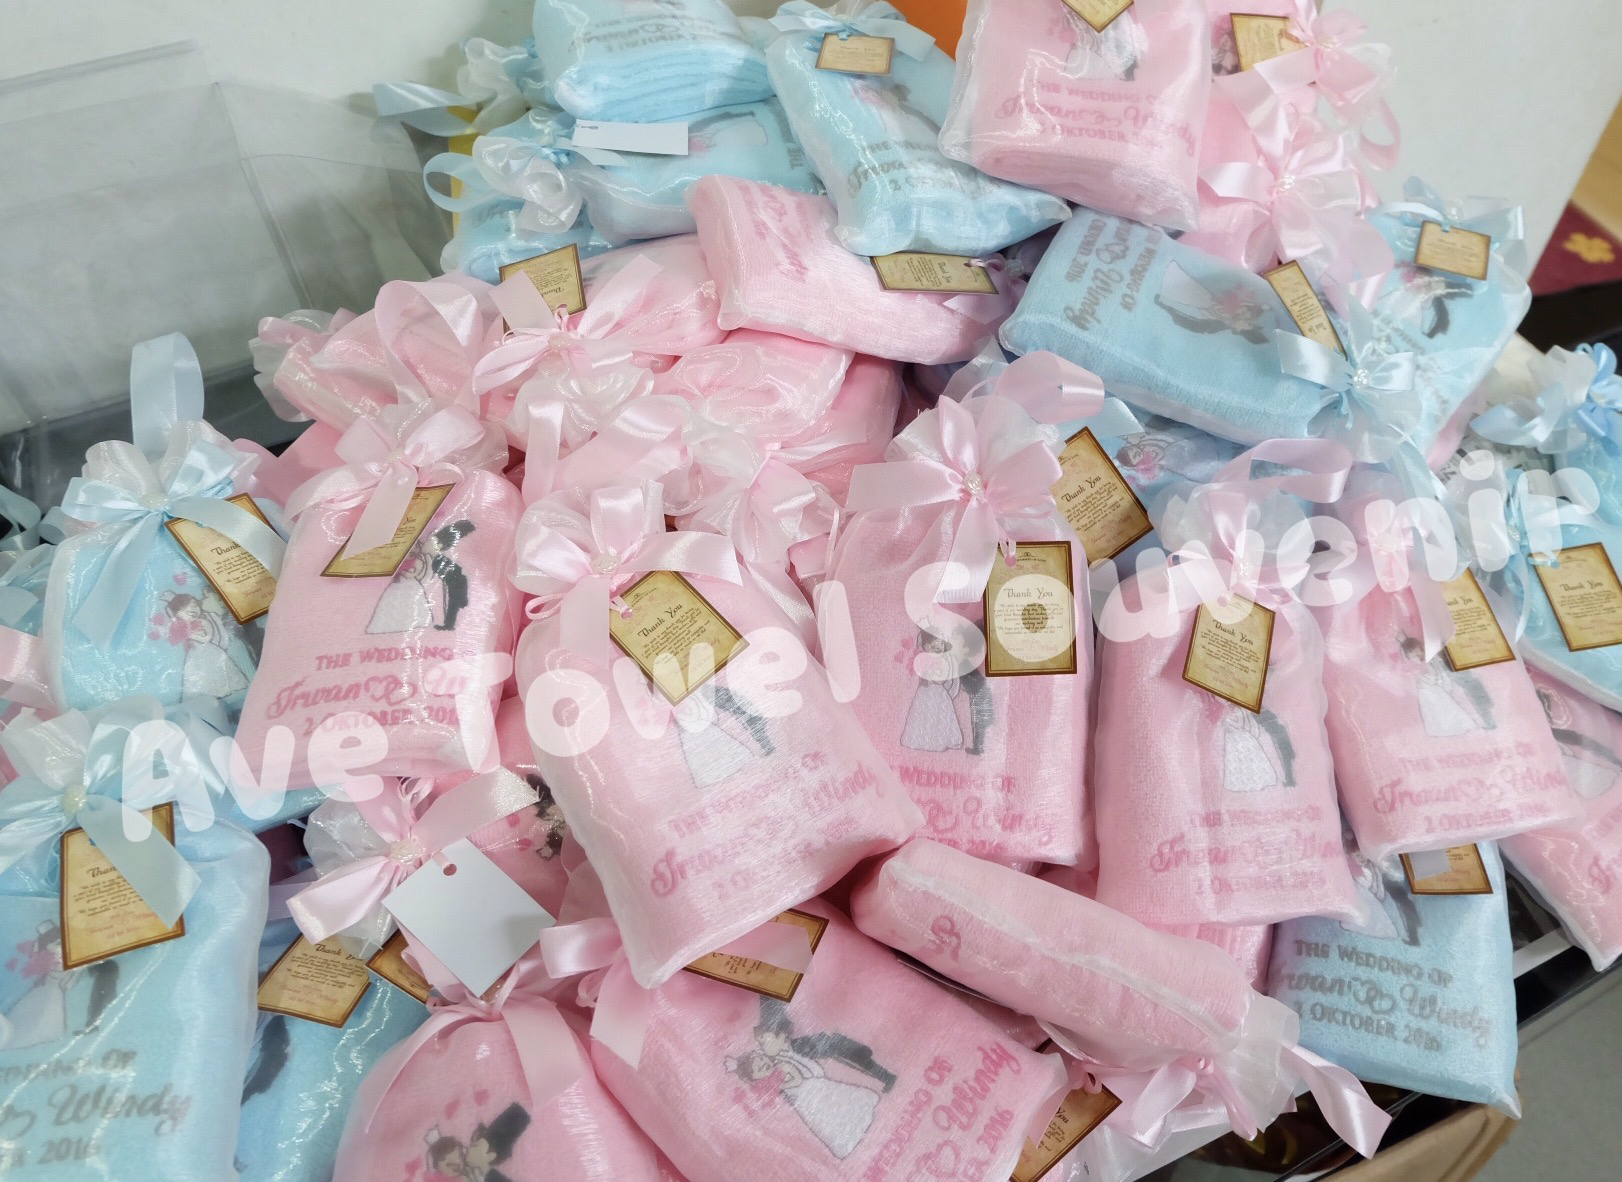 Ave Towel Souvenir | Wedding Favors & Gifts in Surabaya | Bridestory.com